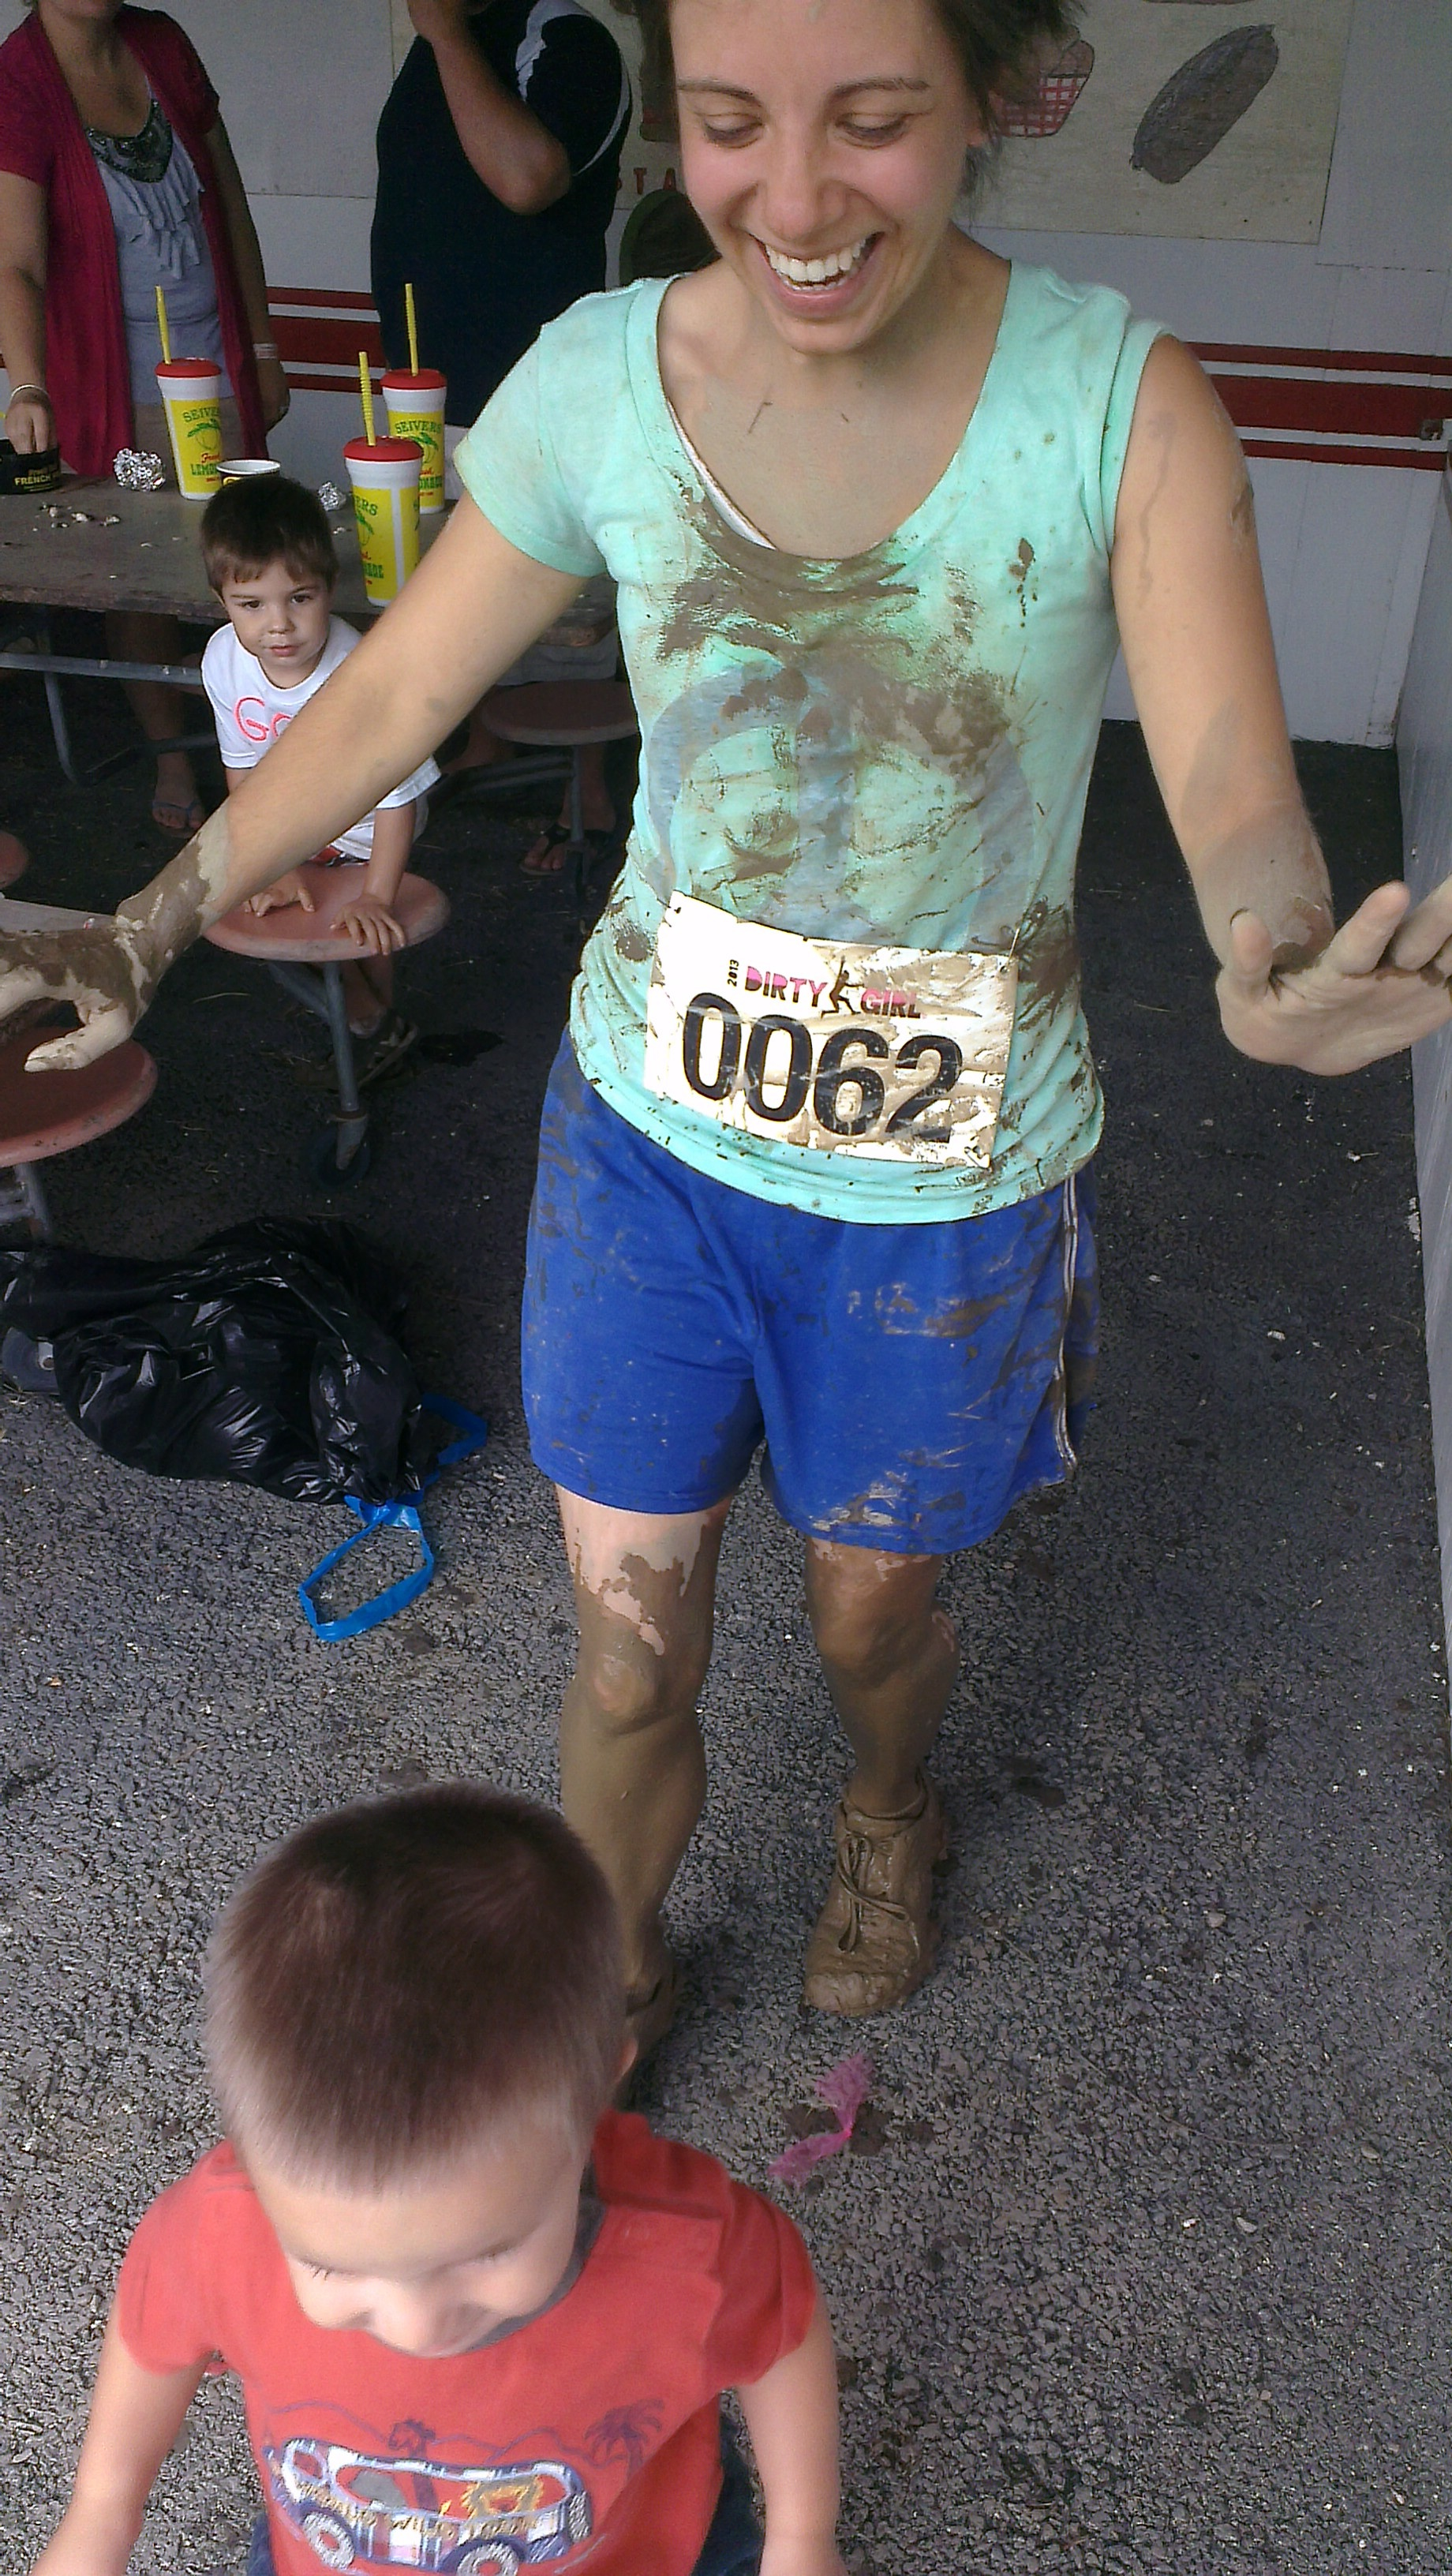 The Mommy Mud Monster